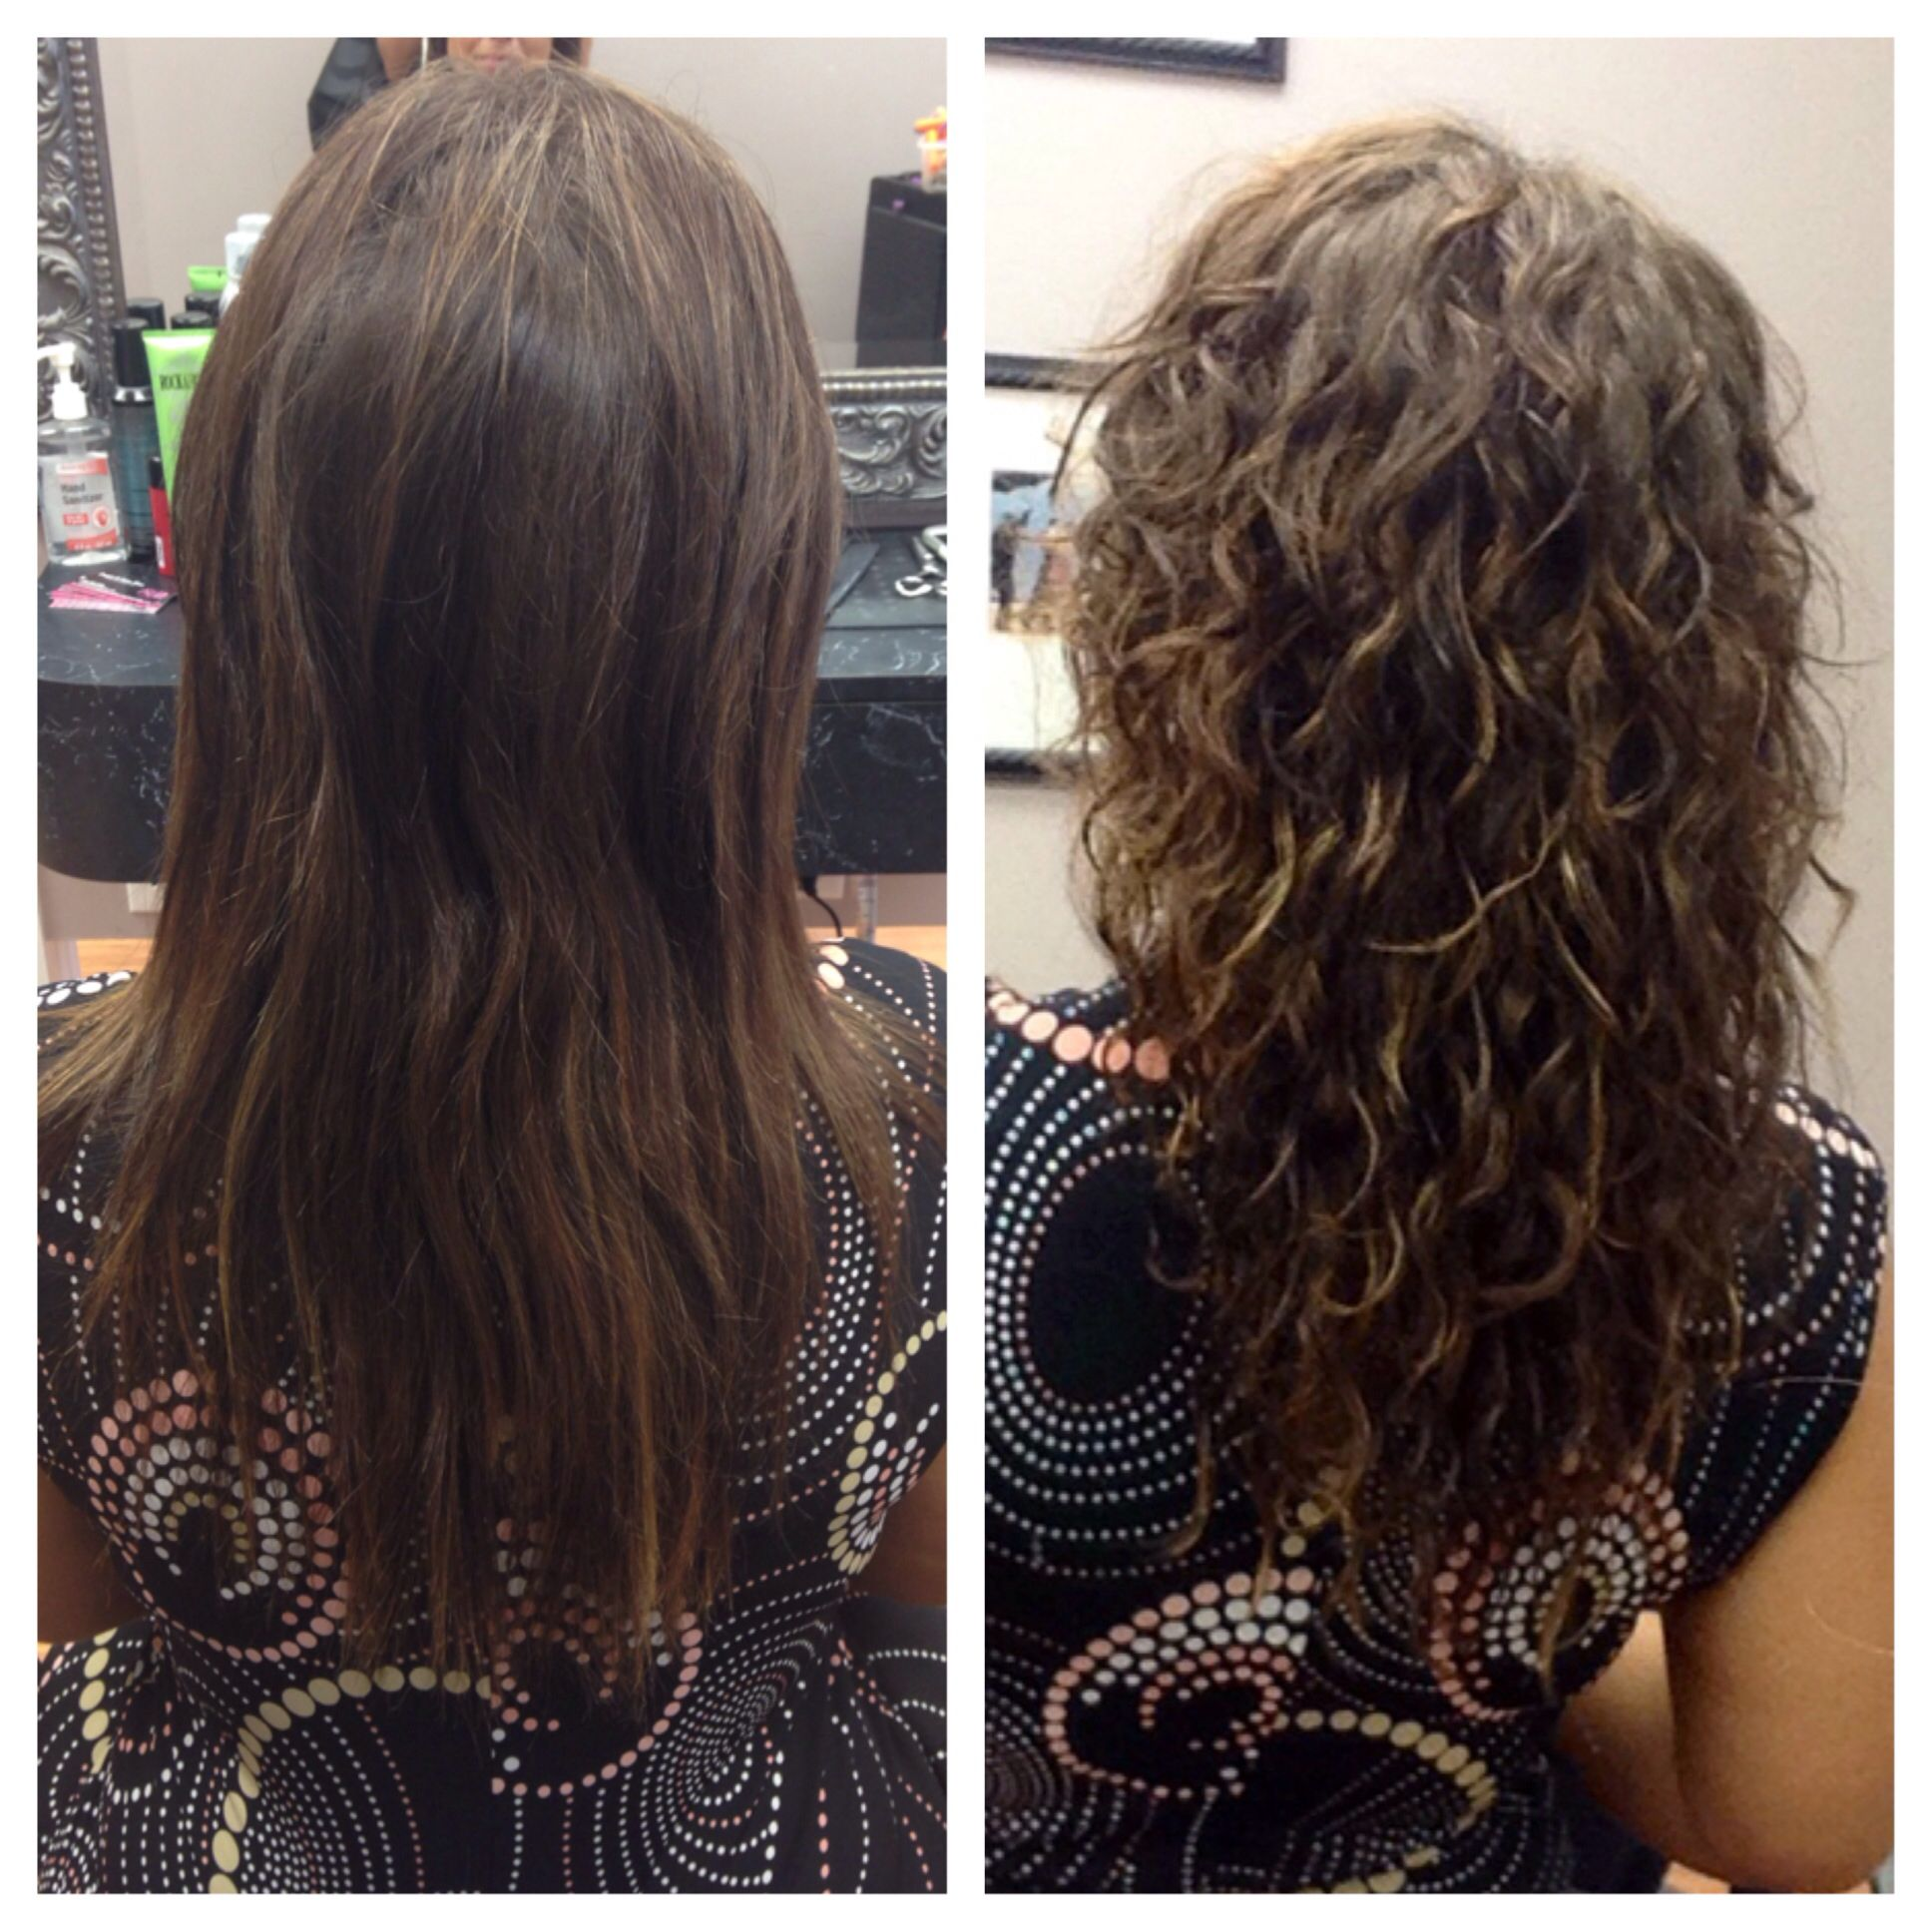 Body Wave Perm Before And After Permed Hairstyles Hair Styles Thick Hair Styles